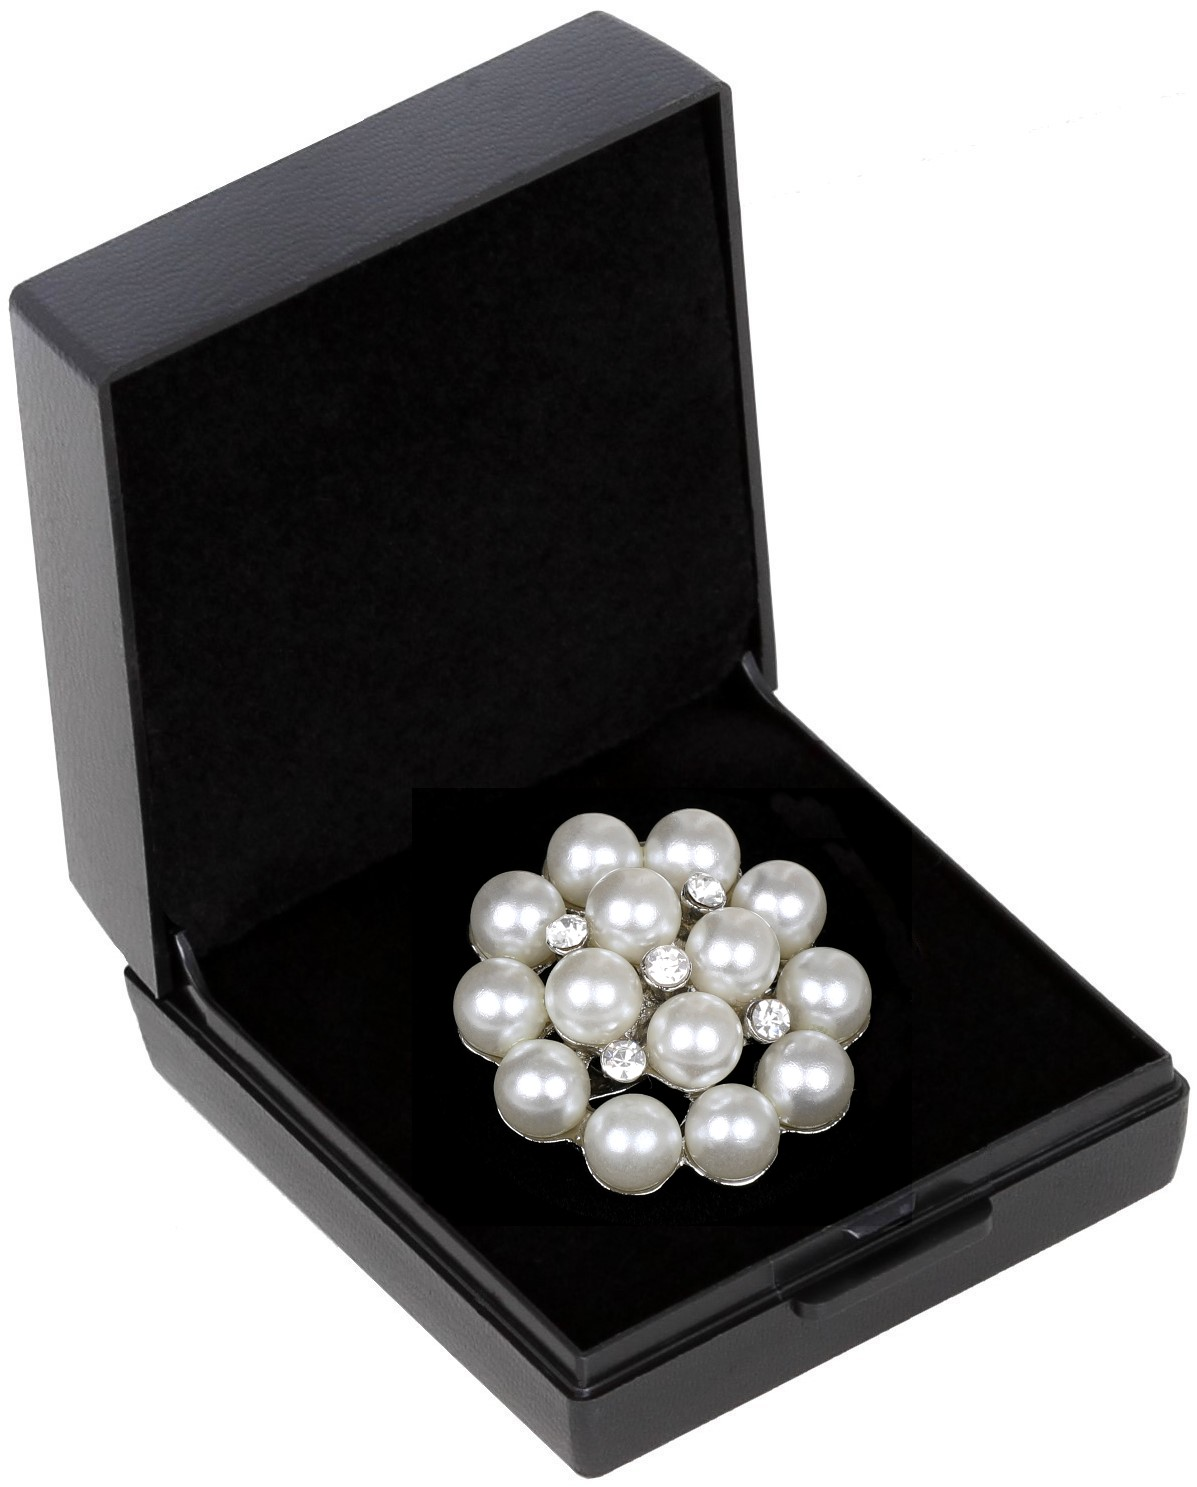 SD® Pearl Collection III stock pin.